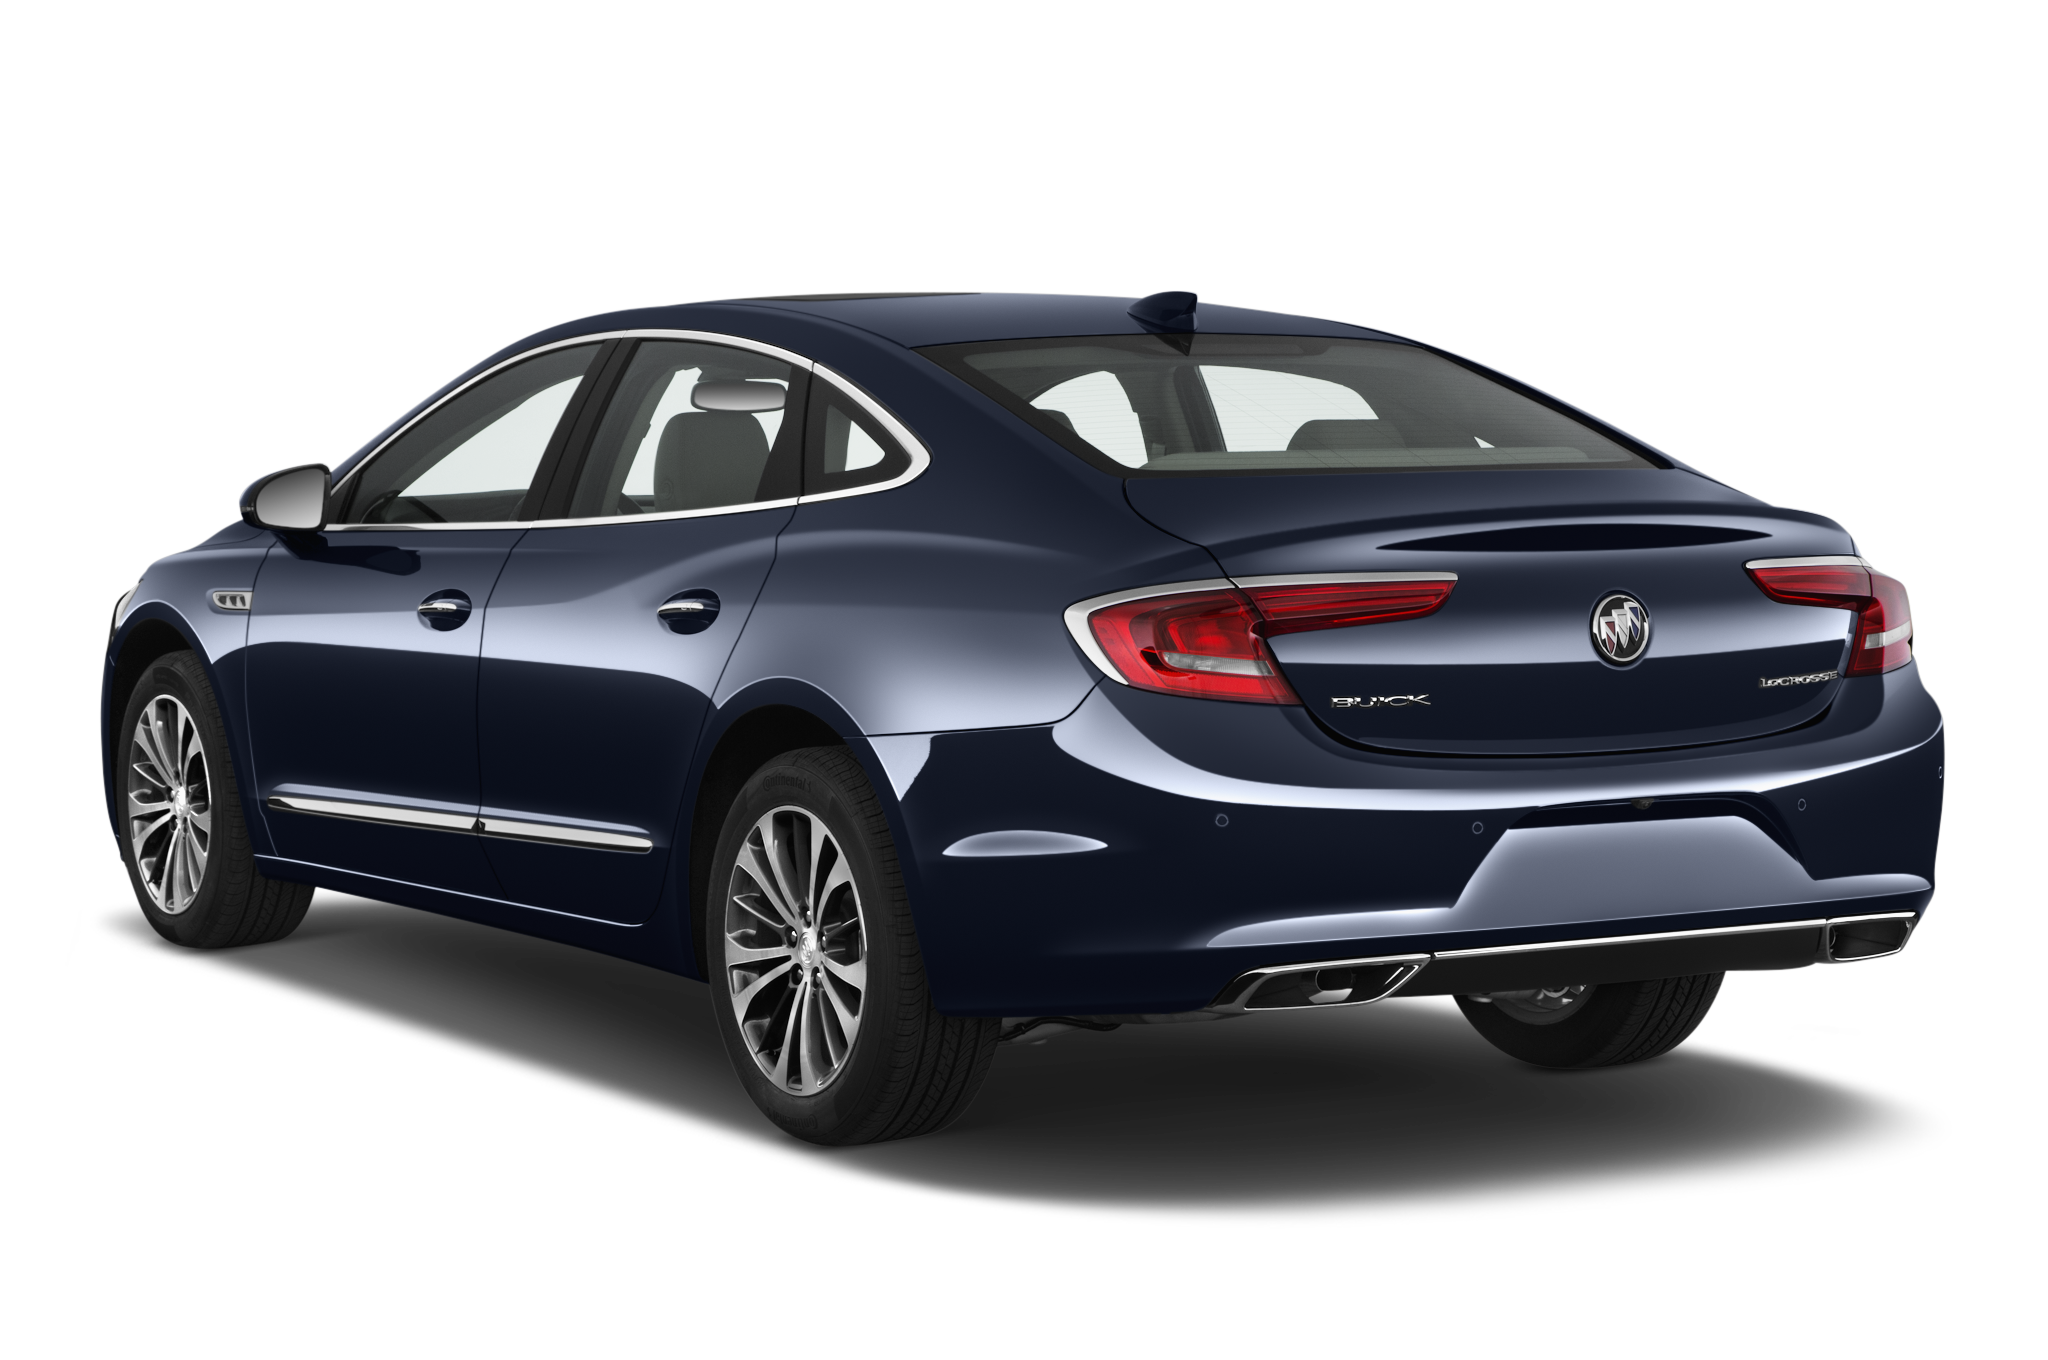 2048x1360 > Buick LaCrosse Wallpapers